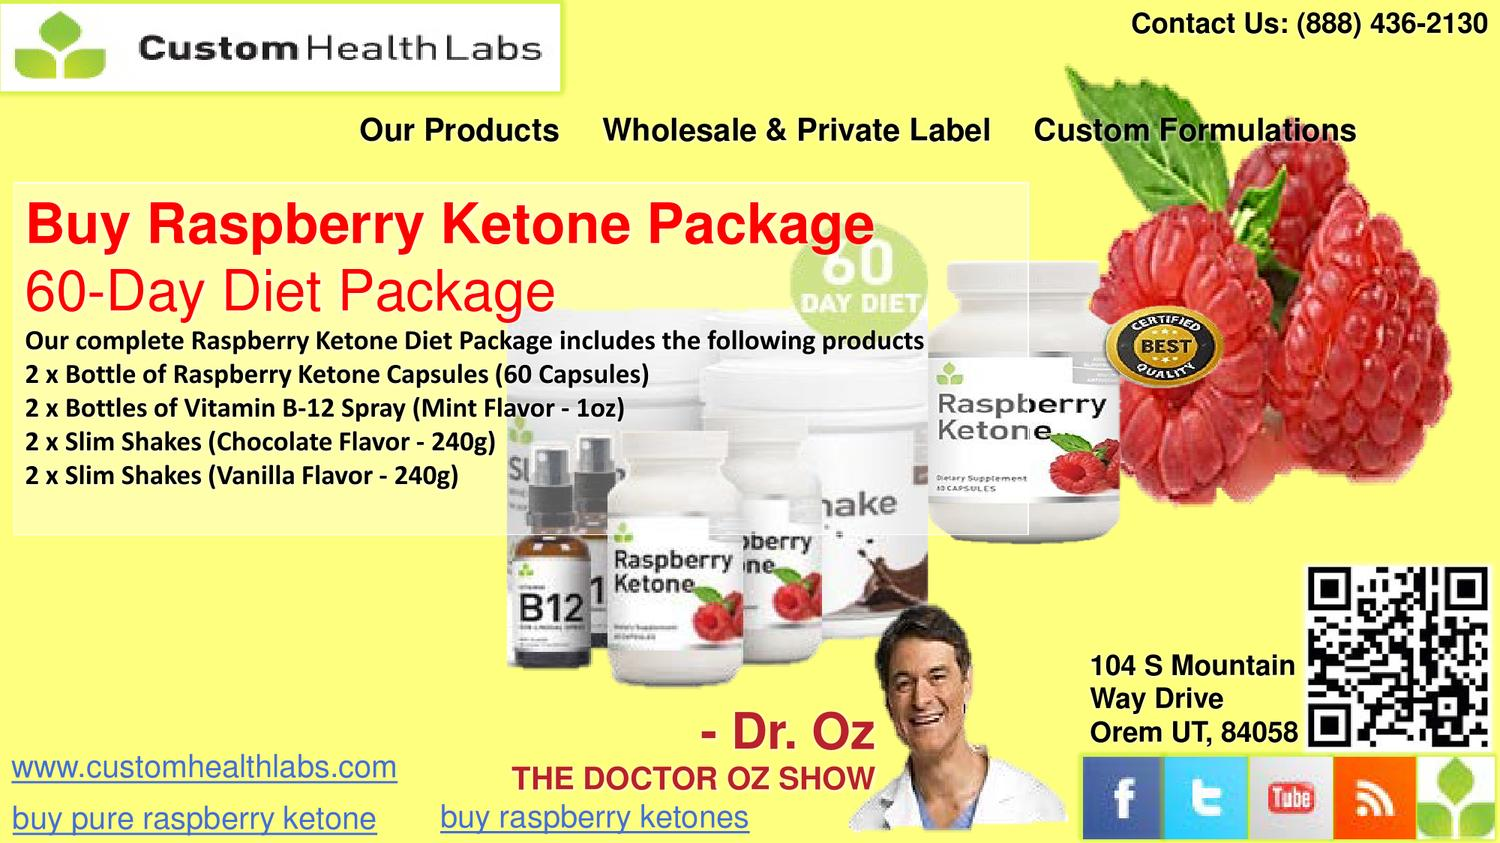 Buy Raspberry Ketone Package60 Day Diet Package By Stephen William Issuu